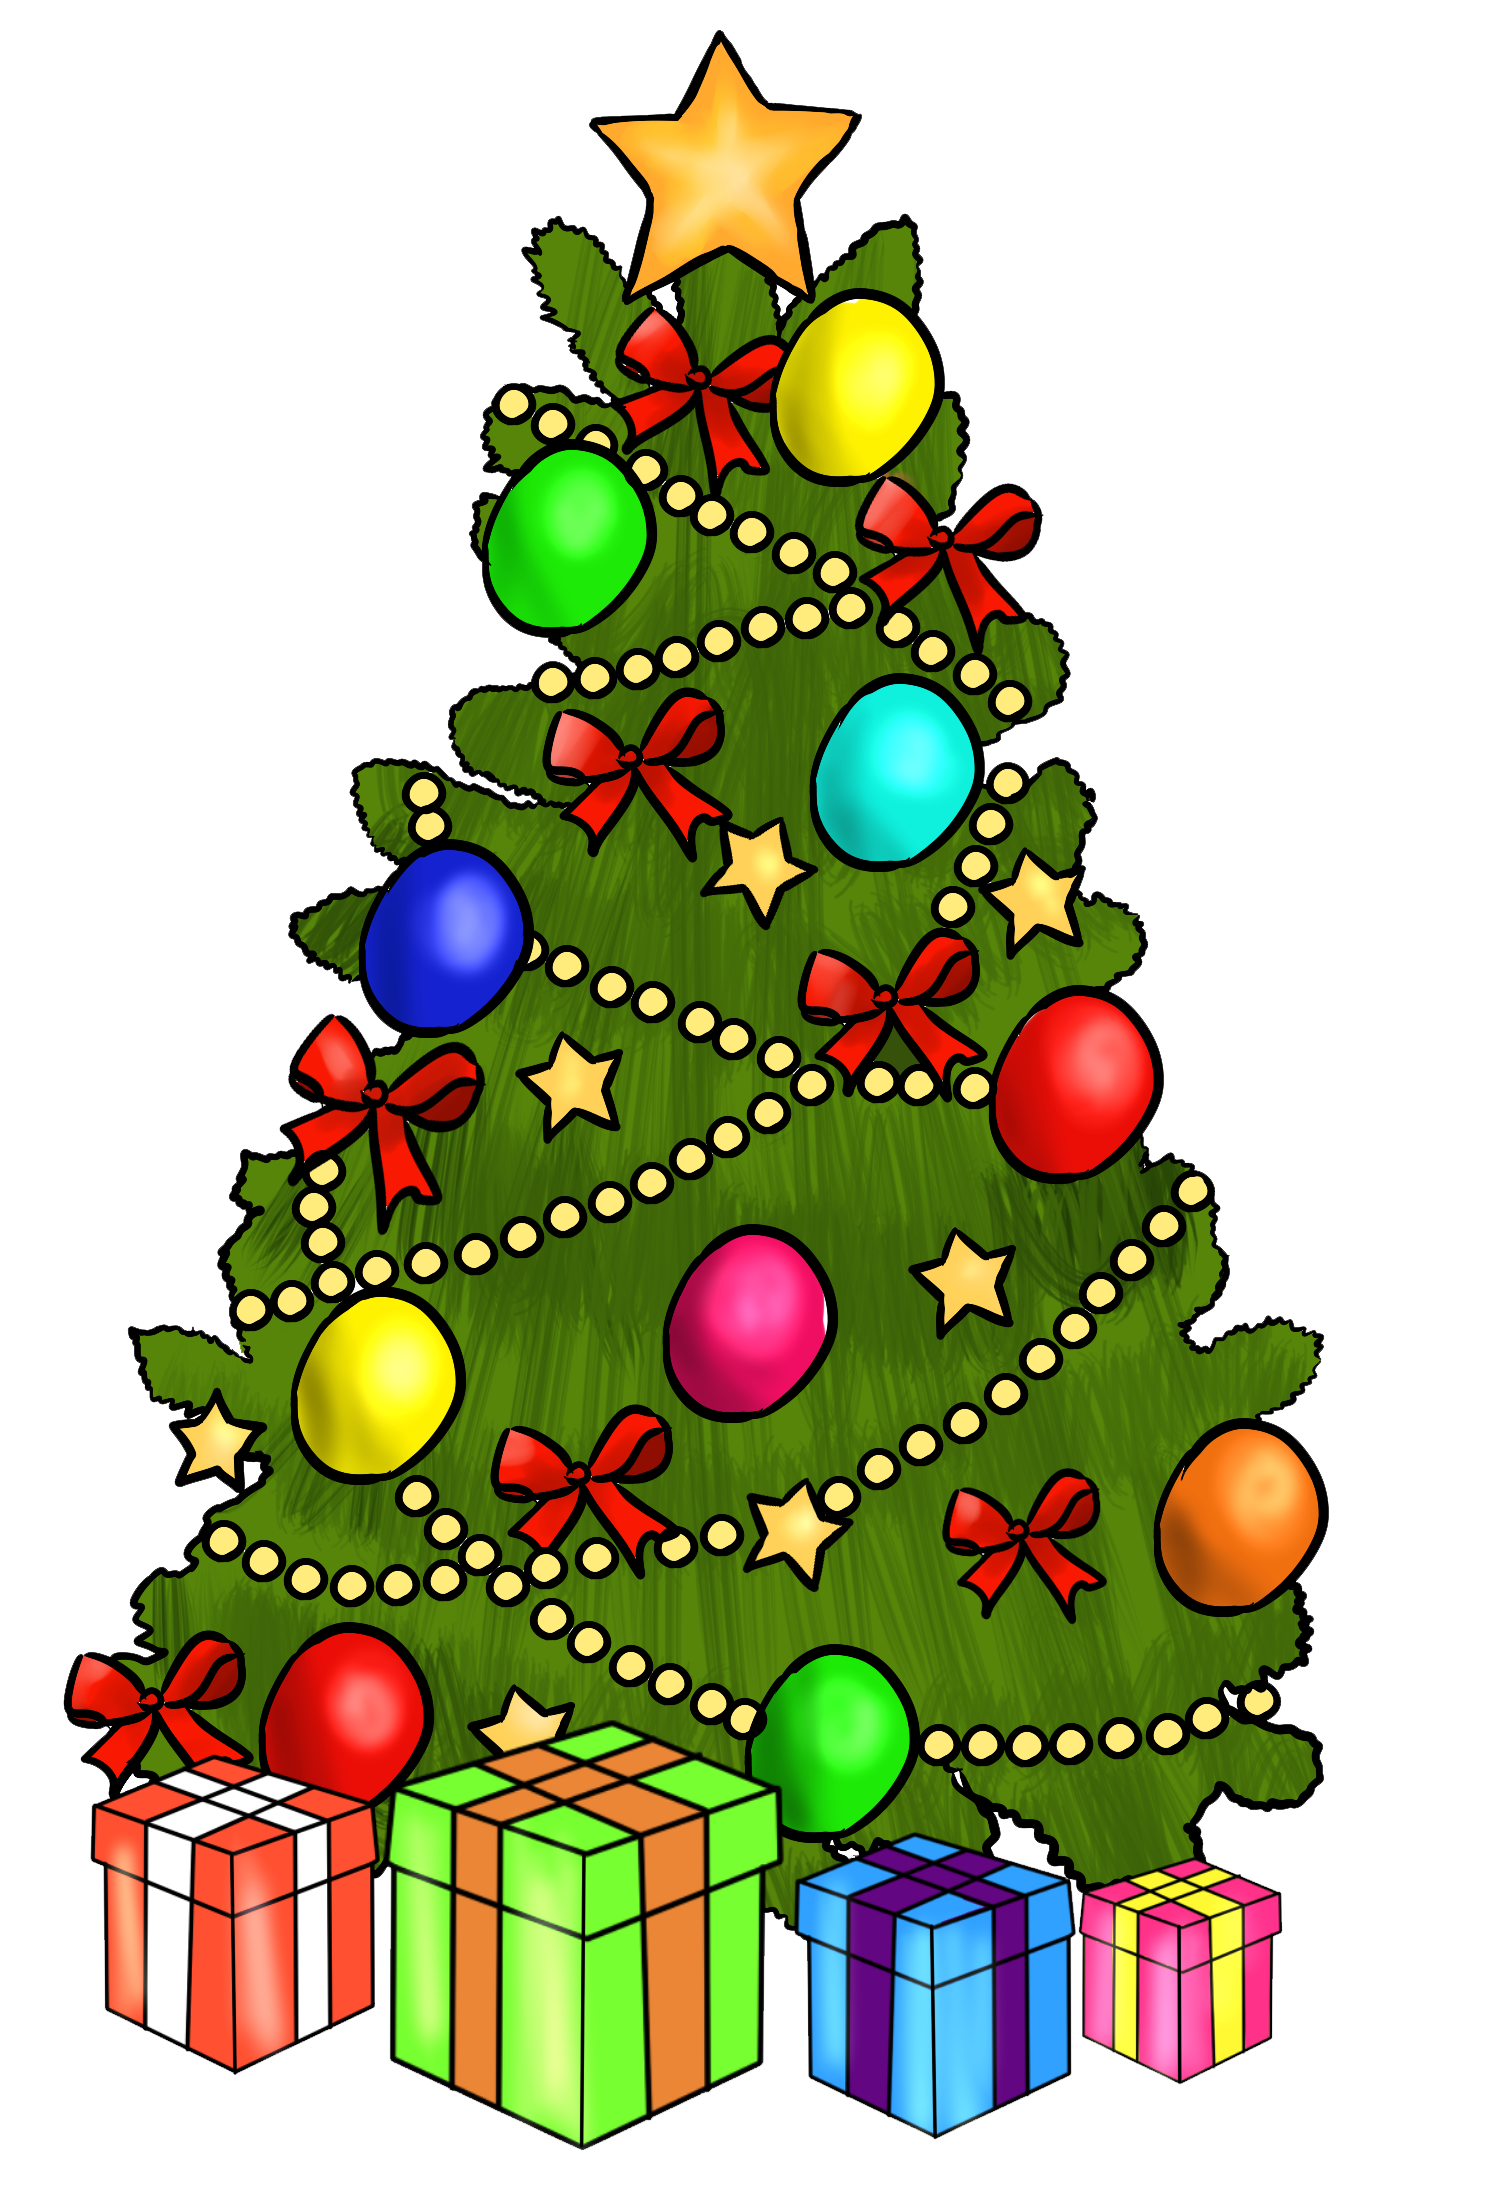 Christmas Tree Clip Art ..-Christmas Tree Clip Art ..-3